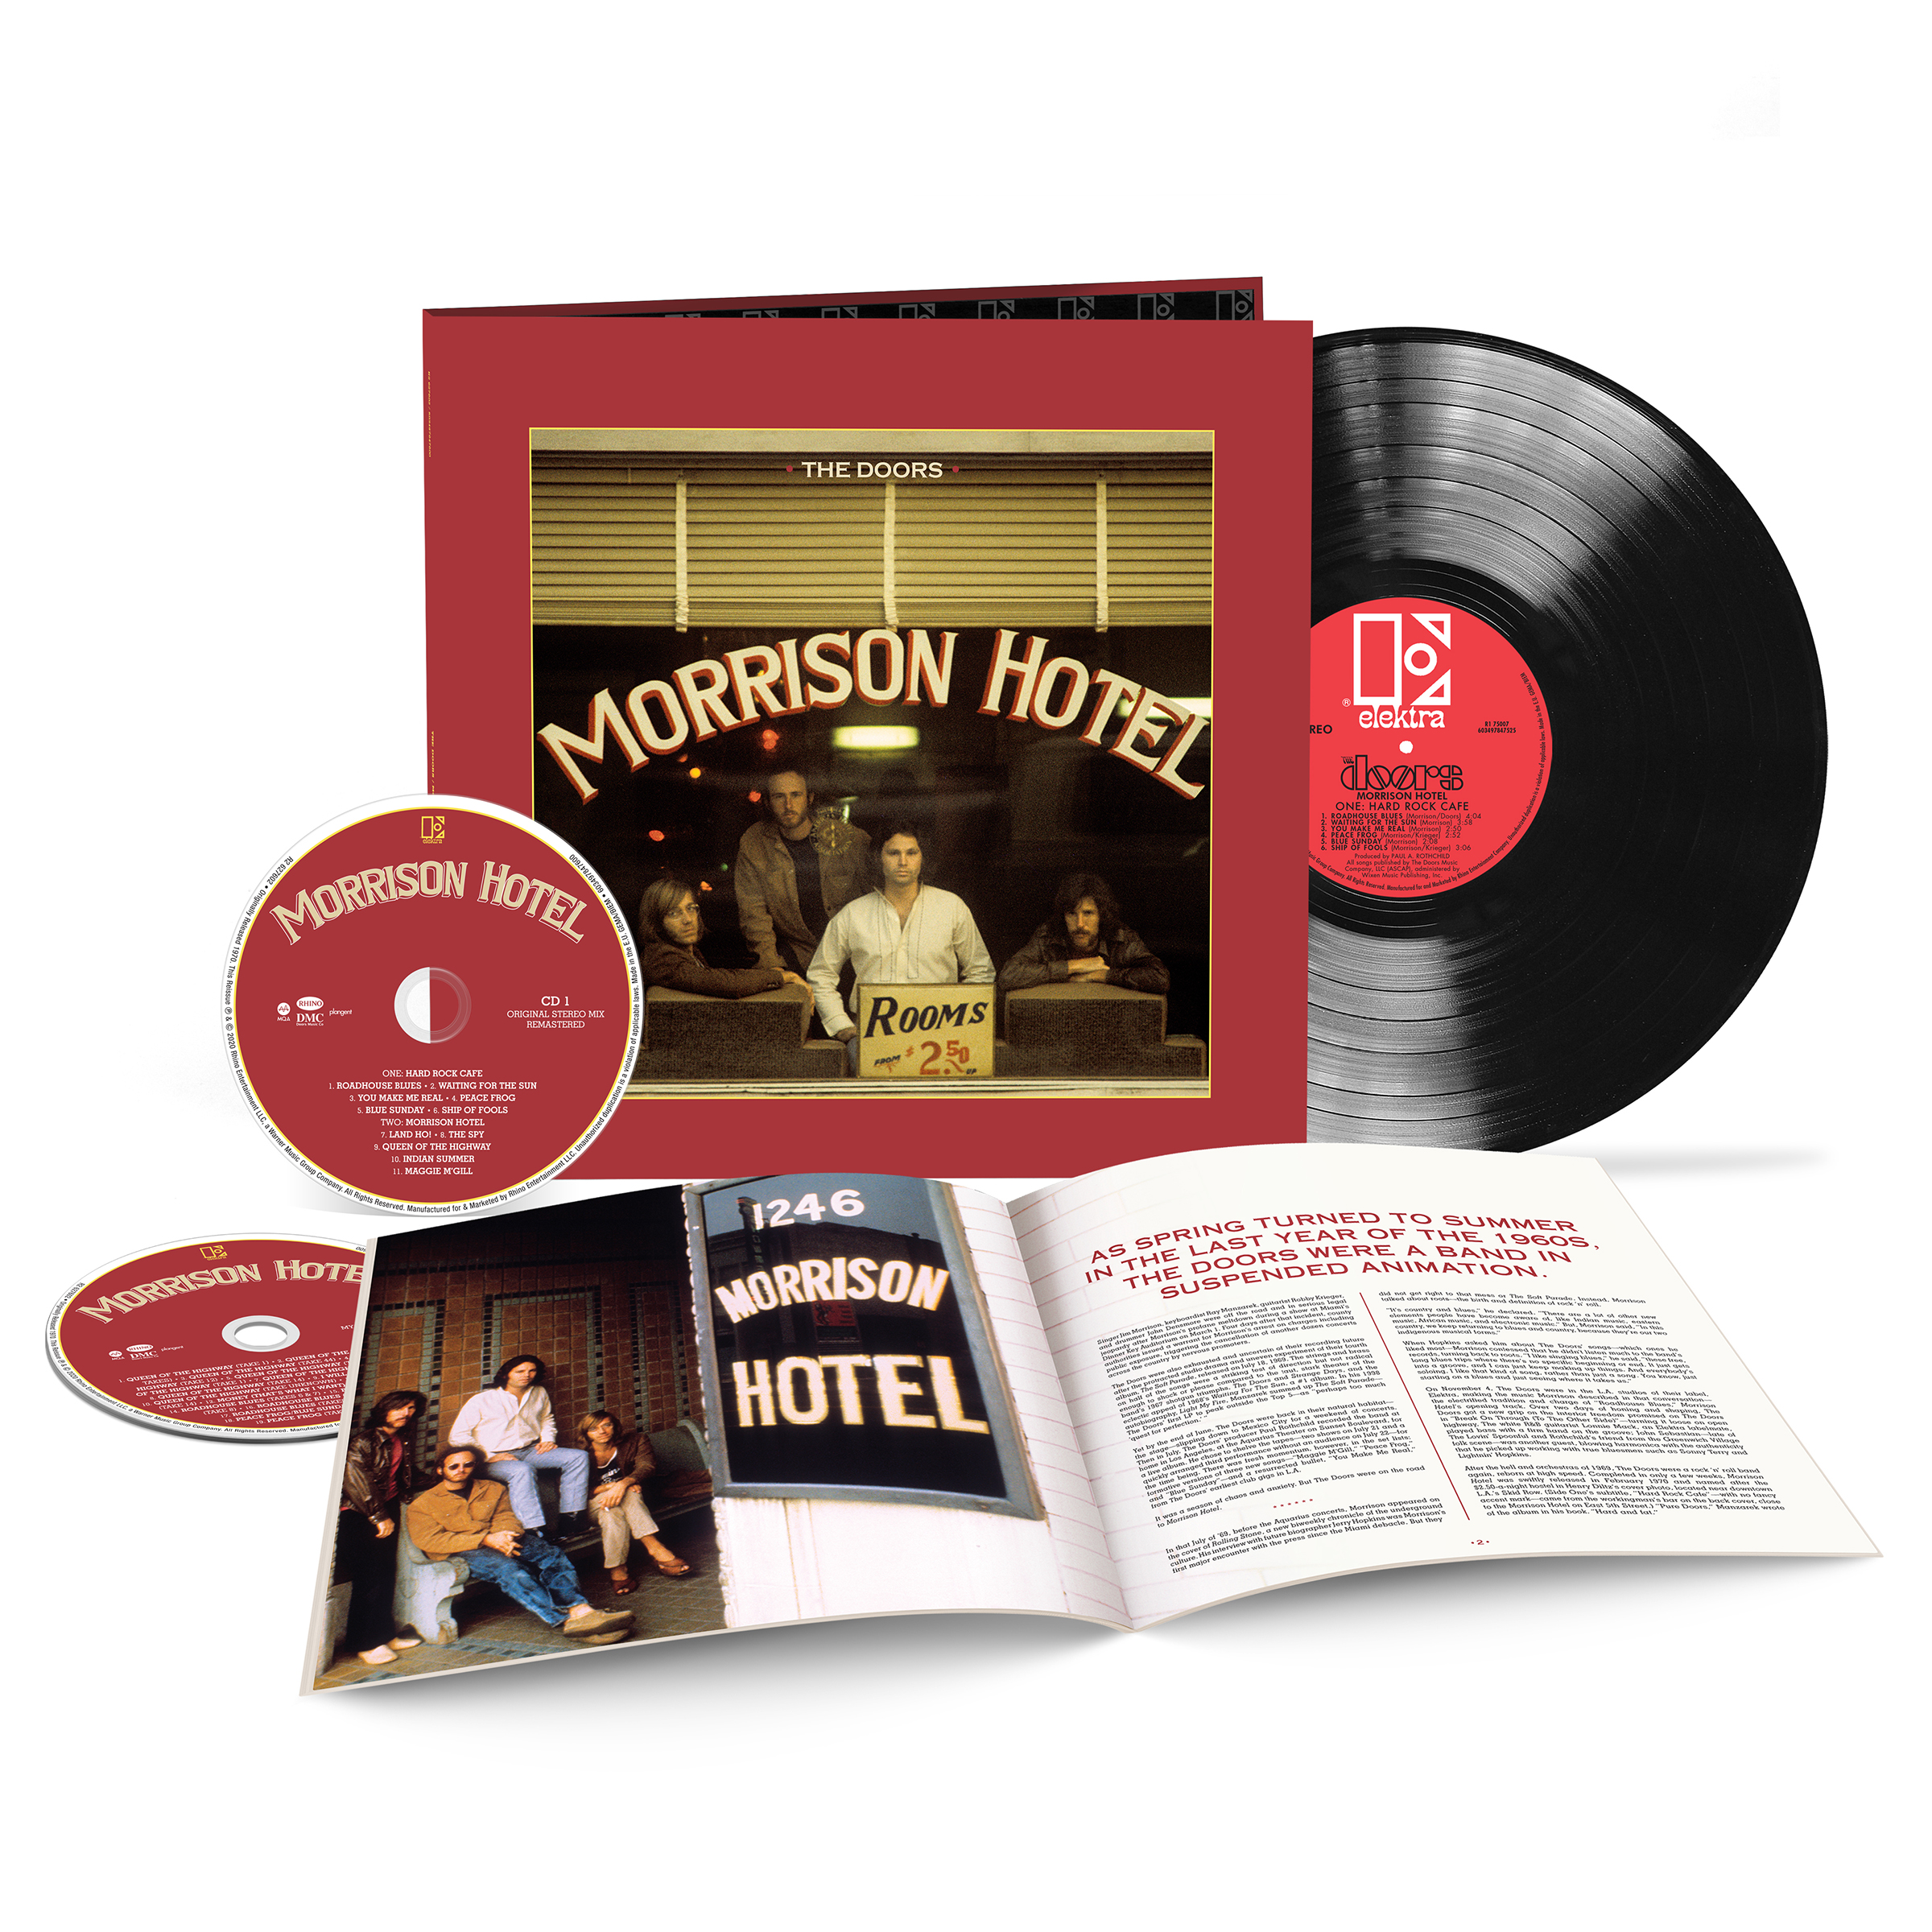 The Doors - Morrison Hotel [2xCD+LP] (50th Anniversary Deluxe Edition)